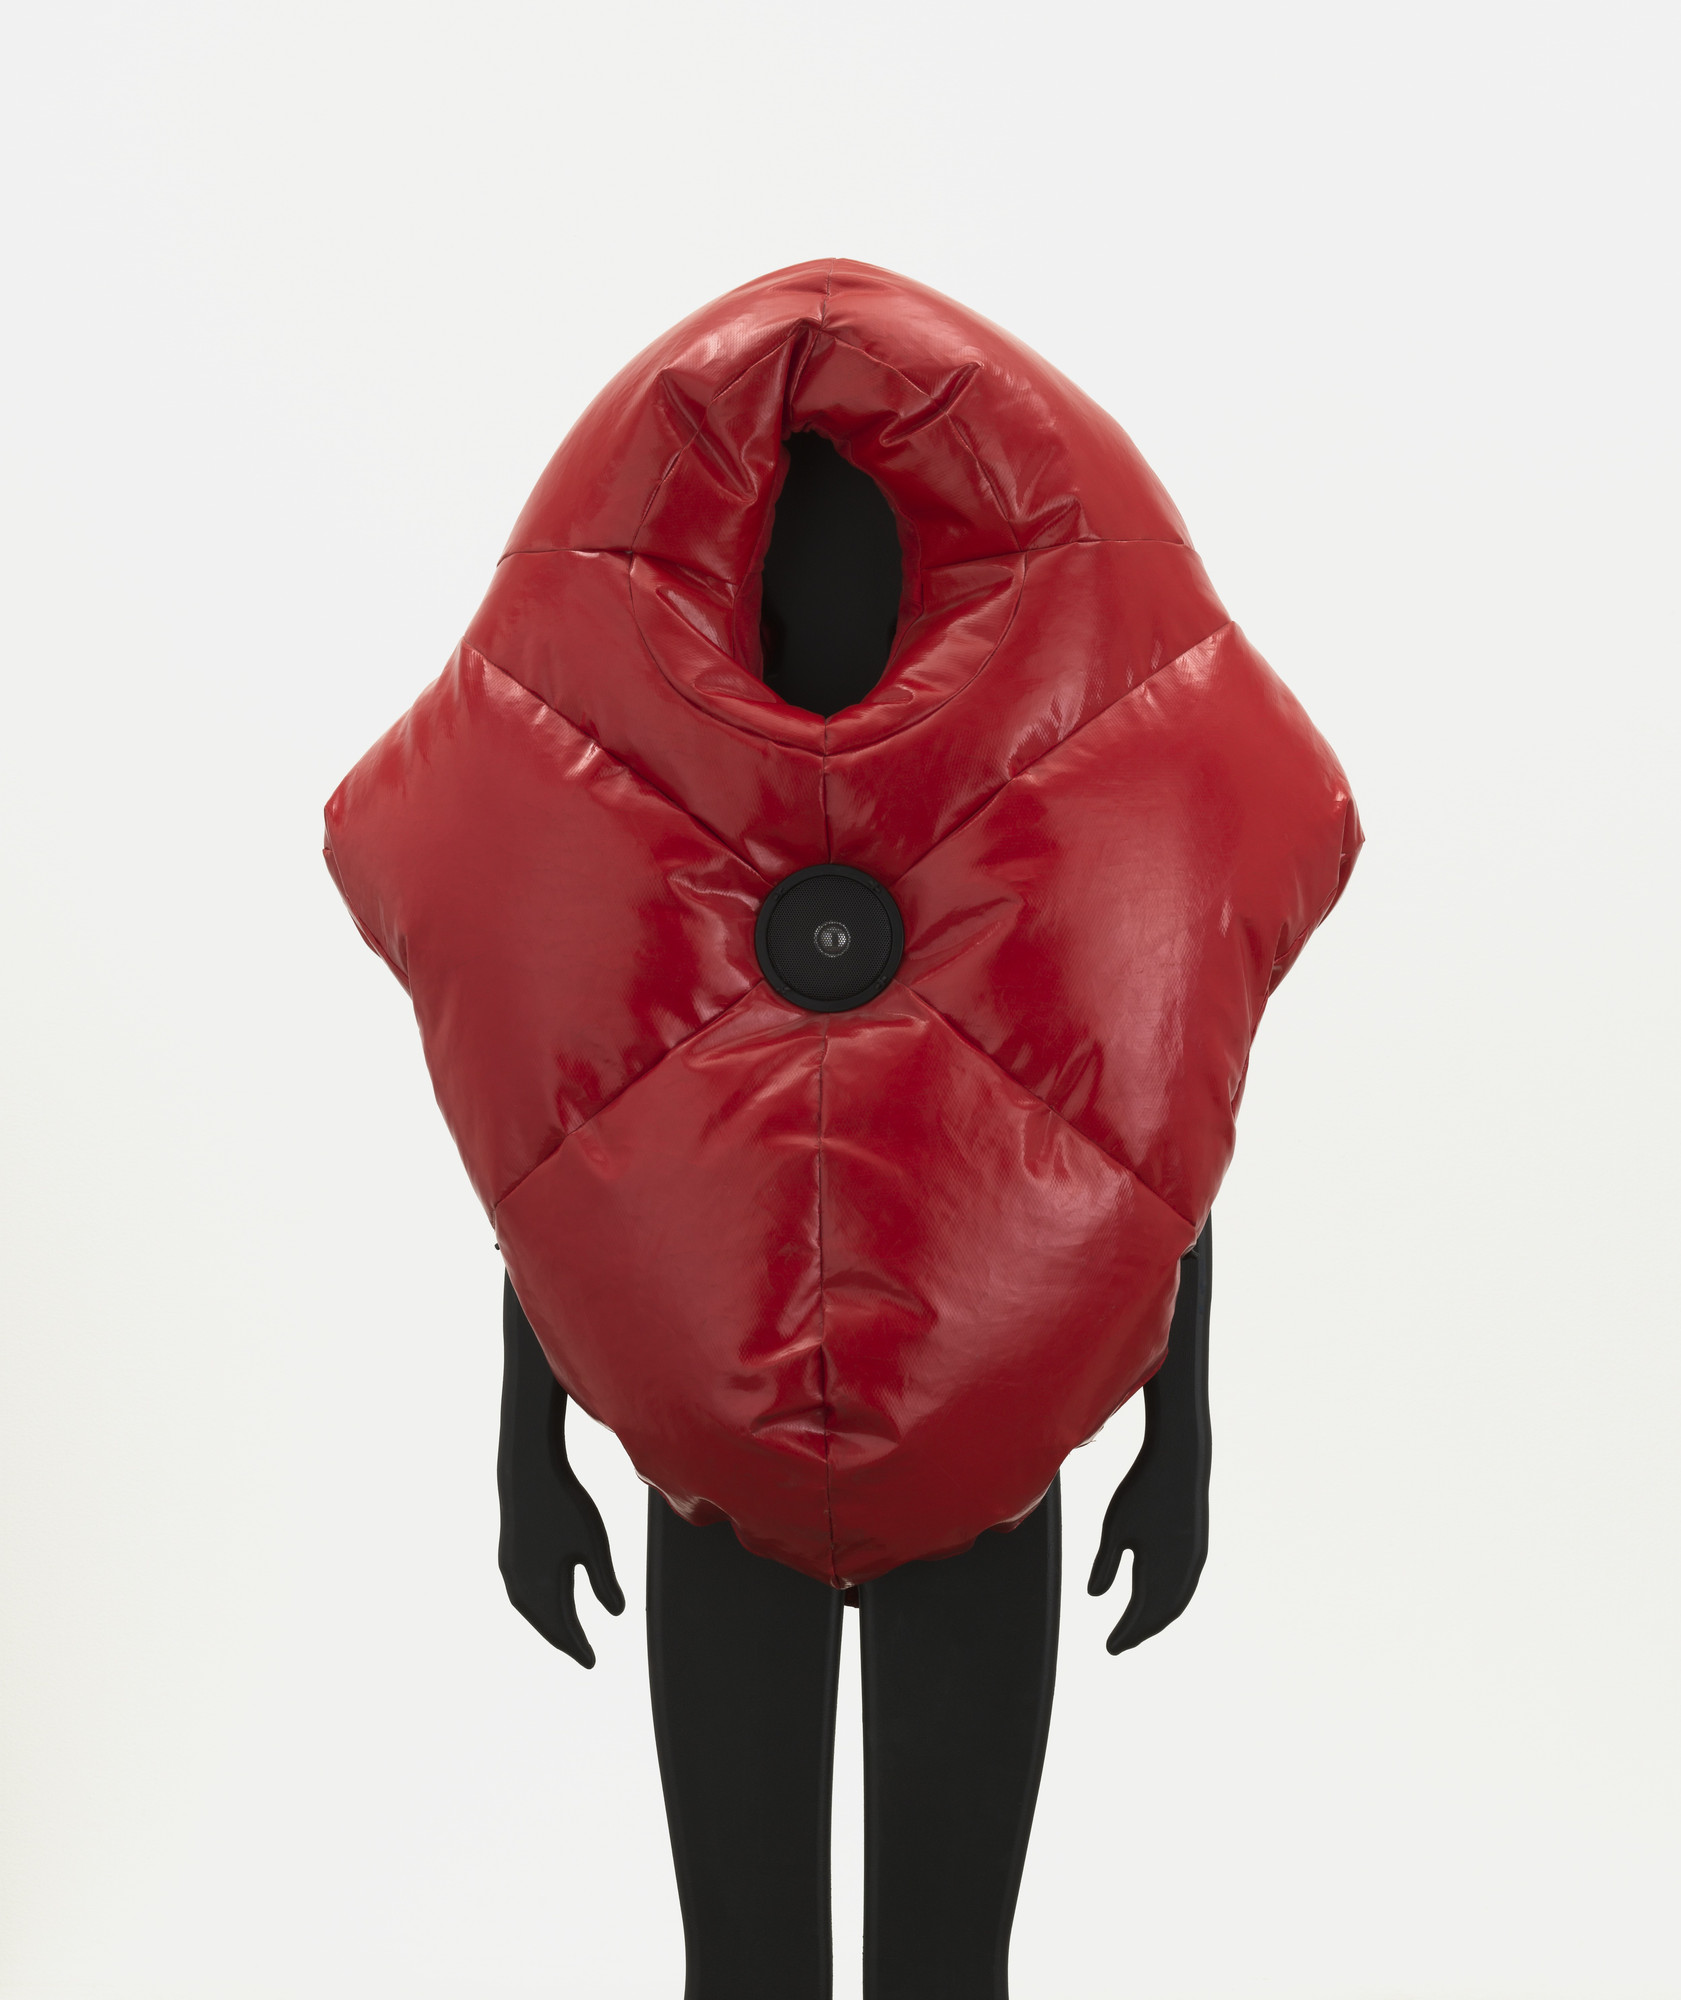 Ralph Borland. Suited for Subversion (Prototype). 2002